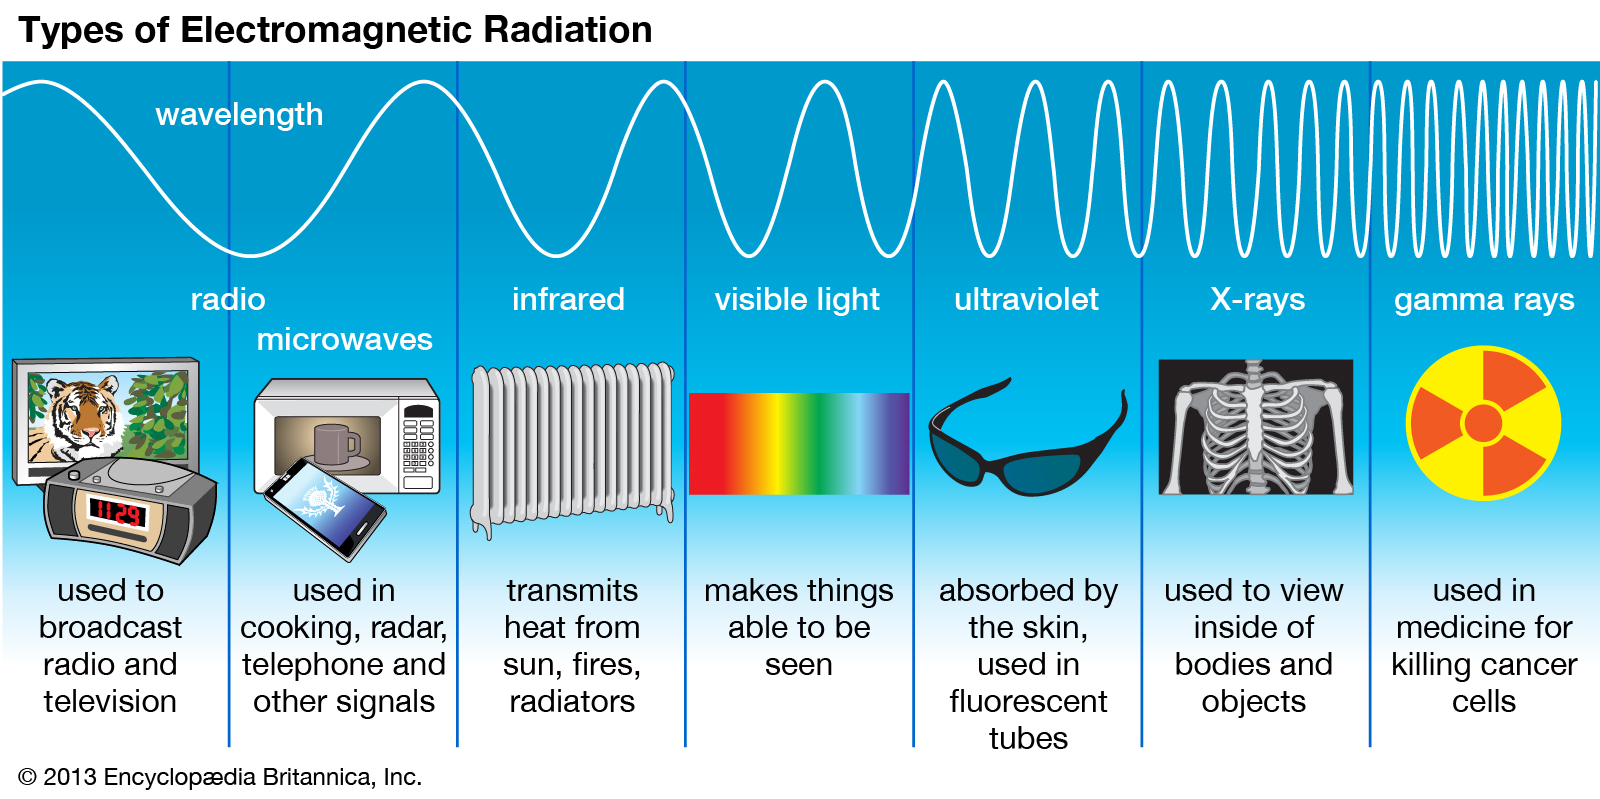 the effects of radio wave technology in the united states By 1908, henry ford from the united states planned to mass produce the car on a production line the modern manufacturing and car industries were born the second industrial revolution brought advances in new energy sources, communication and transport.